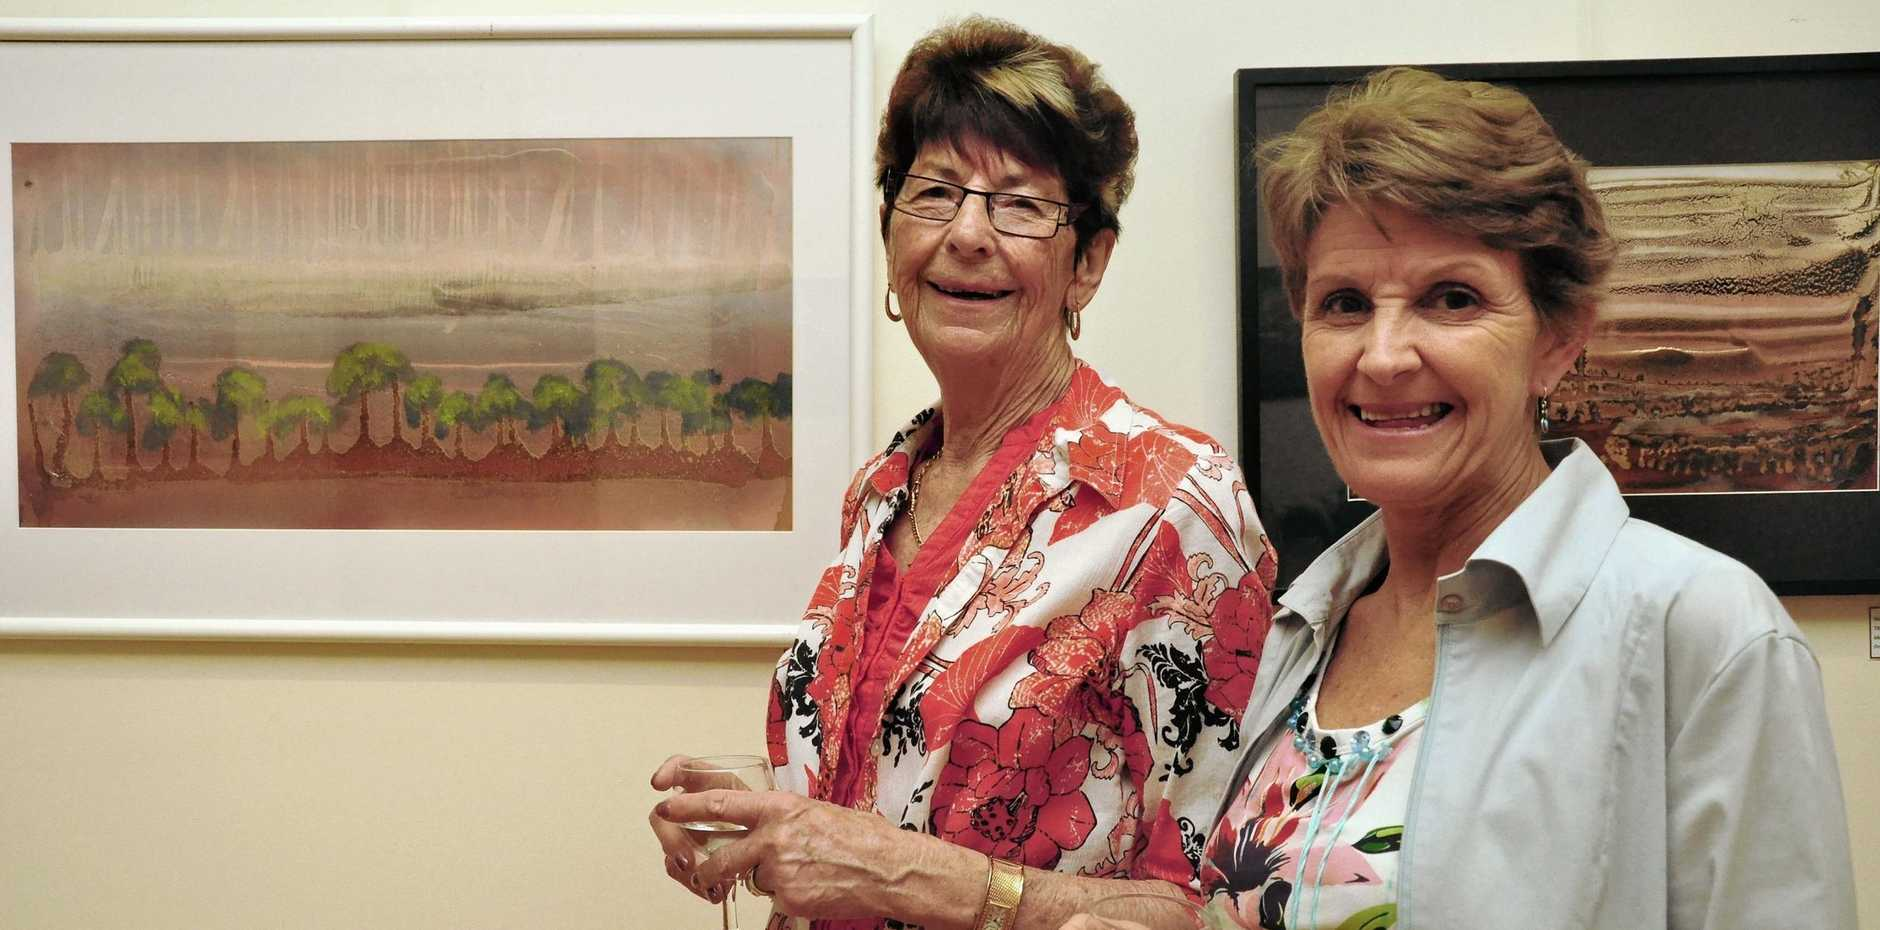 WILL BE MISSED: Alison Iszlaub (left) and Jill Copeland admiring the artwork on display at the Wondai Art Gallery in 2012.